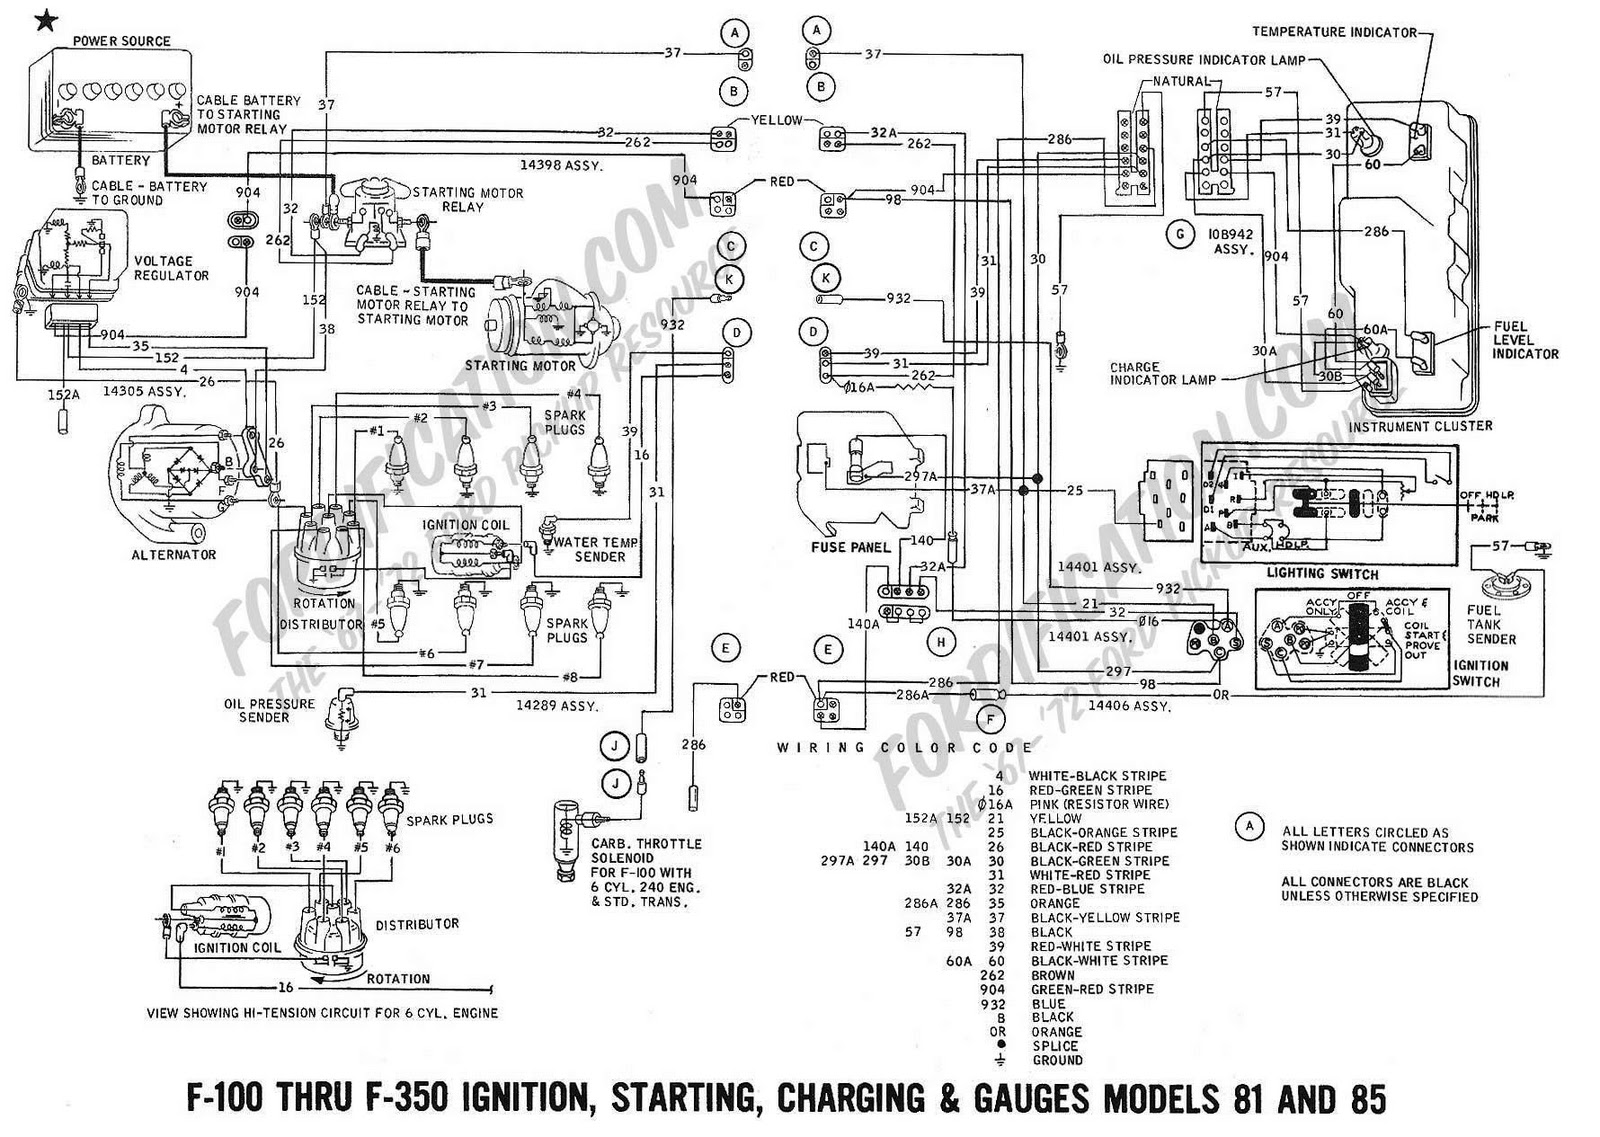 6 3 Electrical Wire 66 Ford Mustang Wiring Diagram Air Library 1966 Ignition Switch Galaxie Cluster Auto 1955 Heater